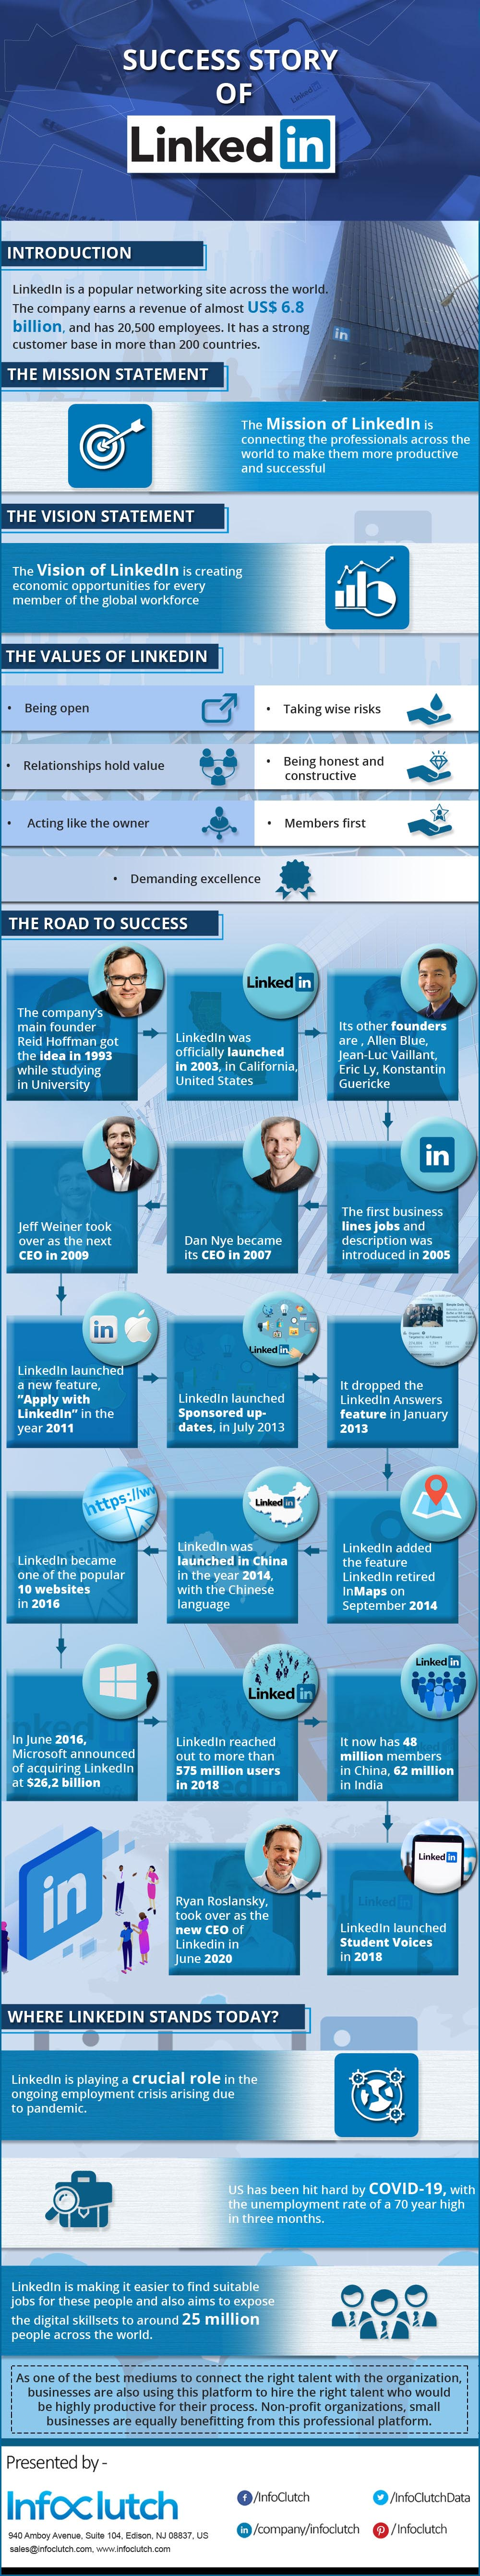 LinkedIn: Facts and Stats You Need to Know [Infographic]